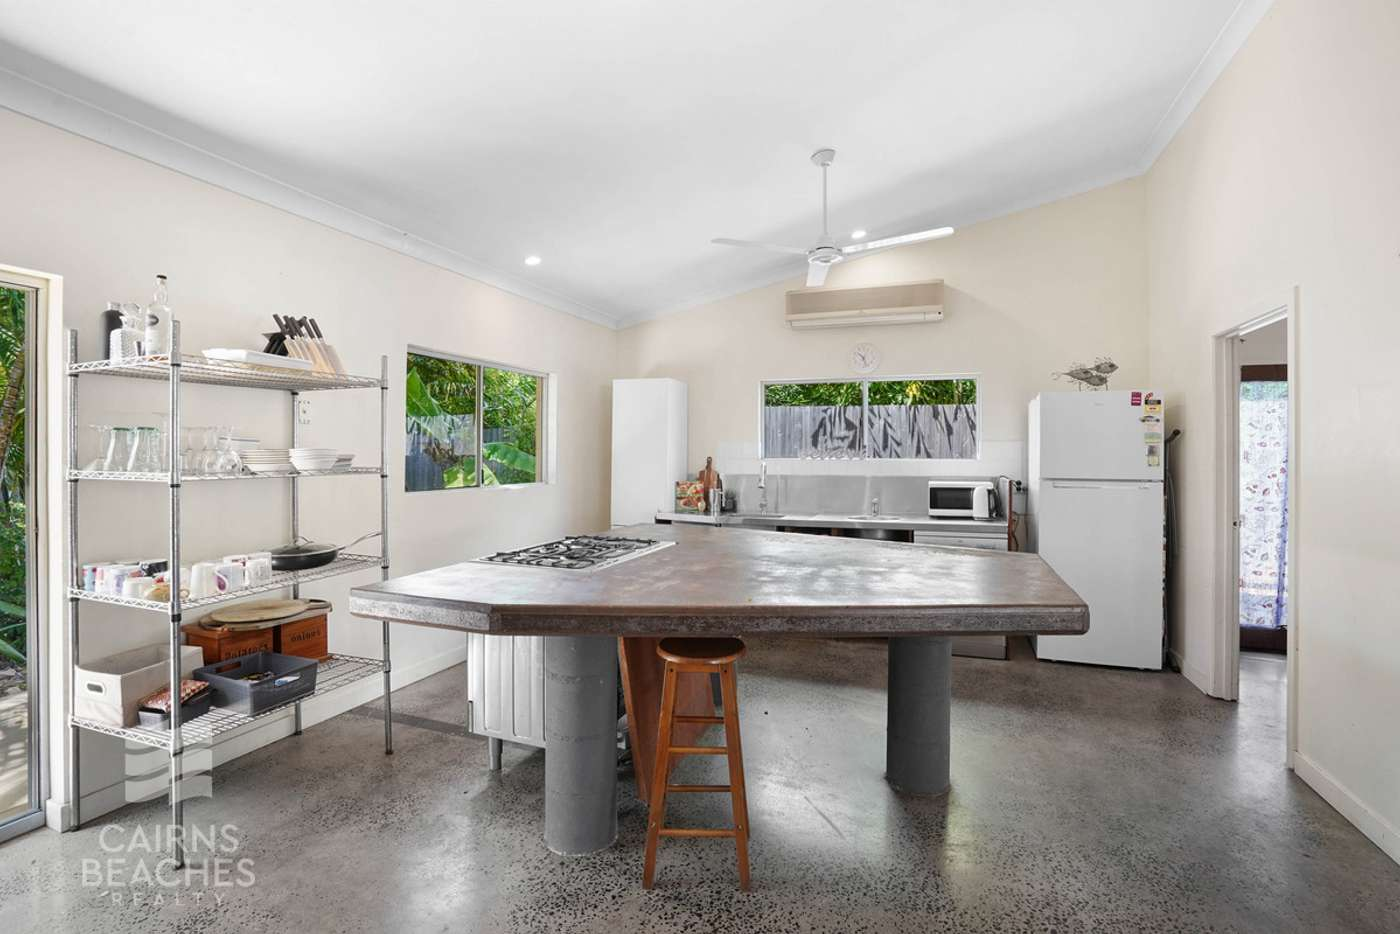 Fifth view of Homely house listing, 6 Satellite Street, Clifton Beach QLD 4879